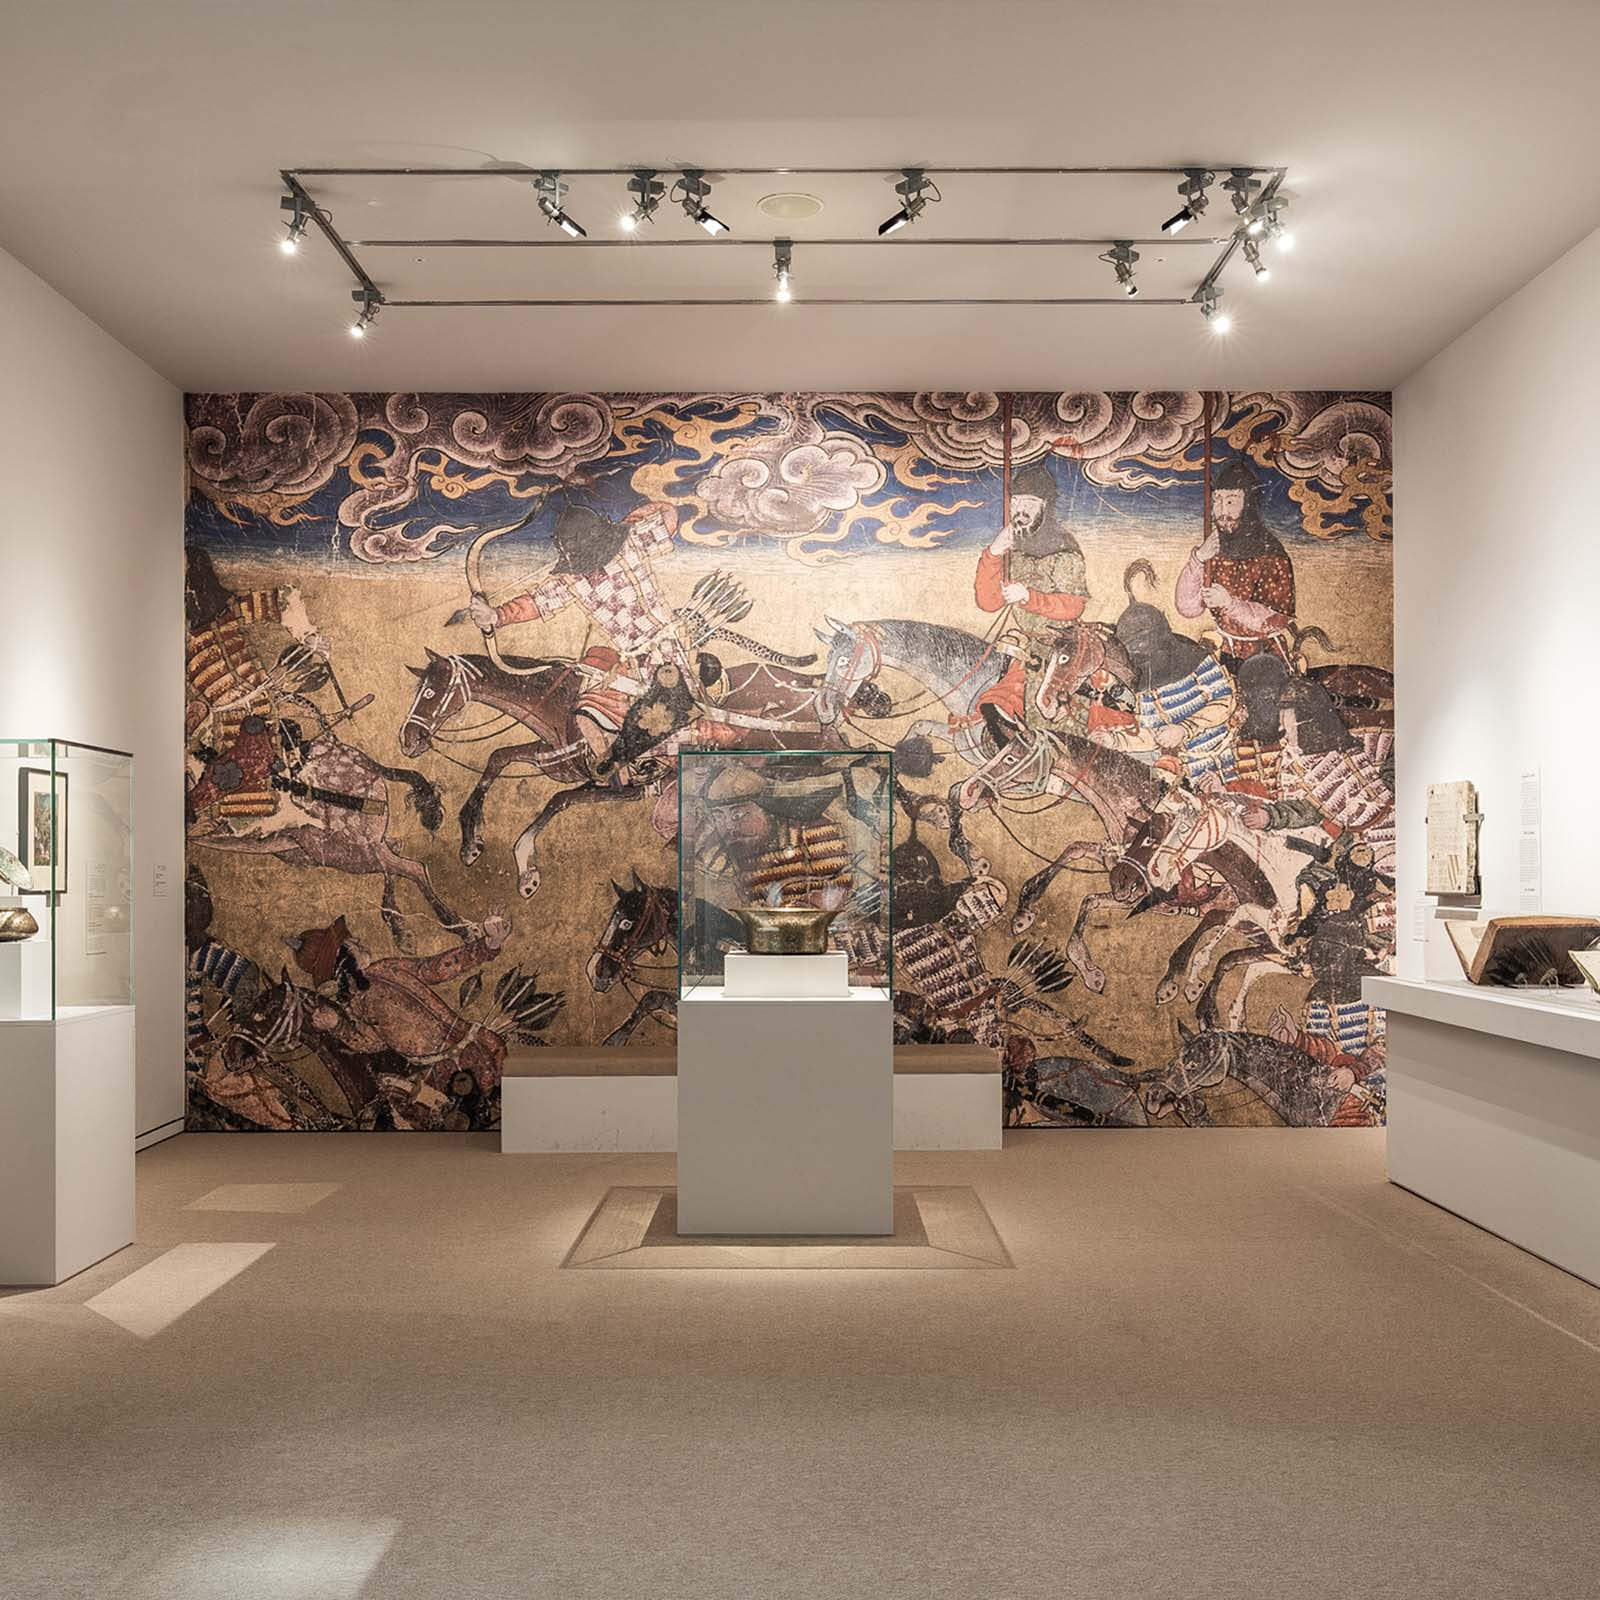 Exhibition Furusiyya: The Art of Chilvalry between East and West